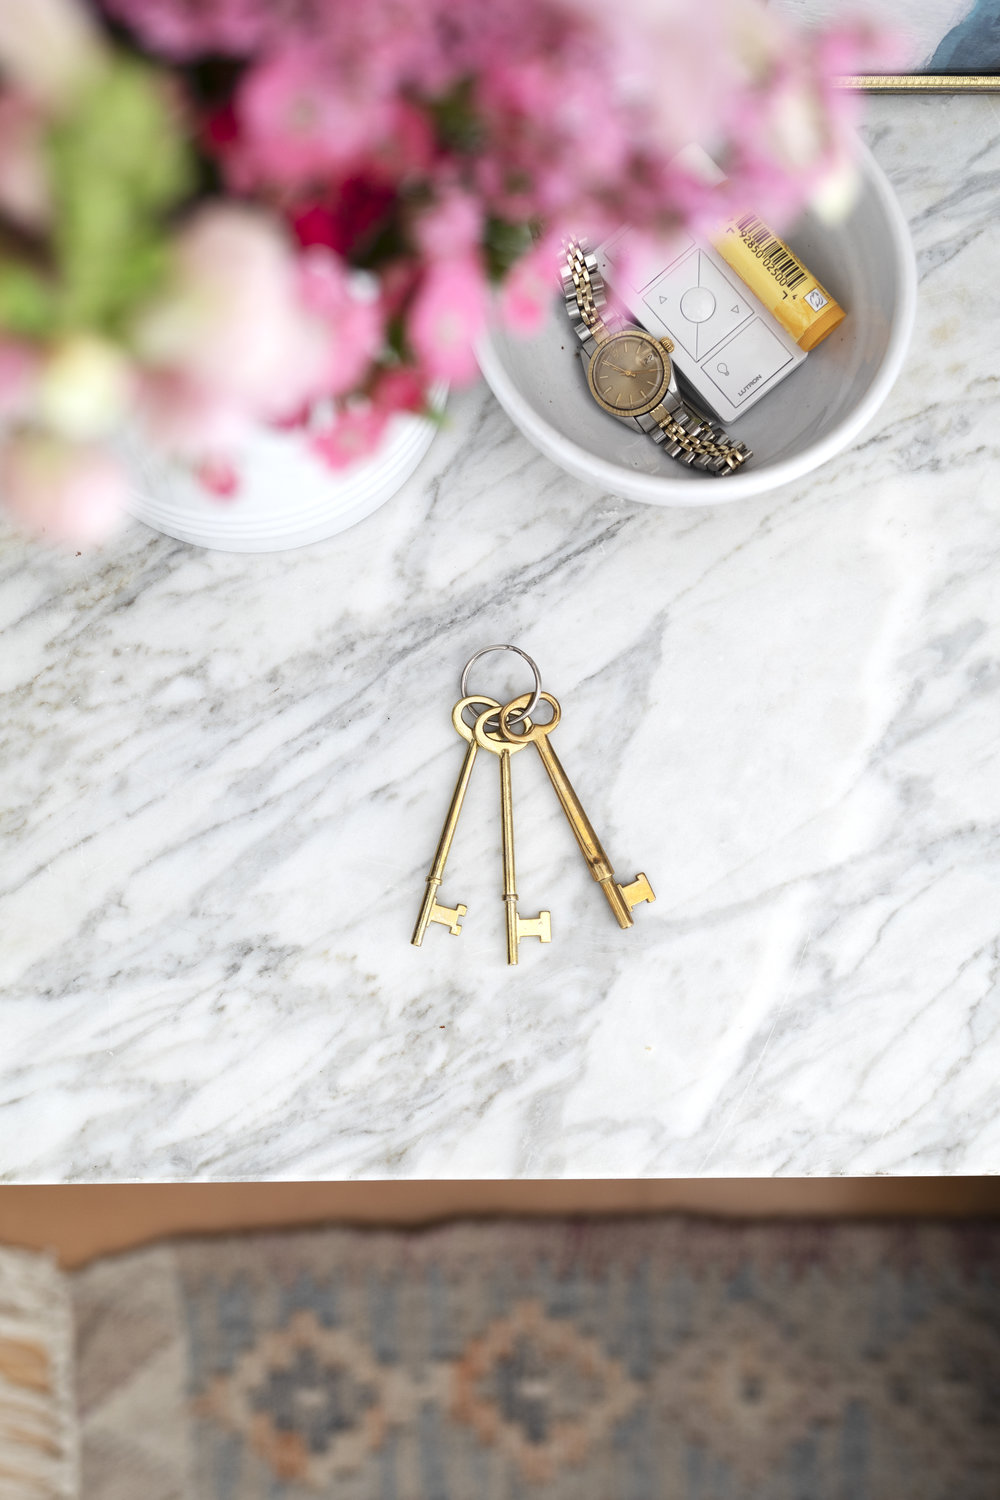 The Grit and Polish - Farmhouse Master Door with Skeleton Keys on Ring.jpg